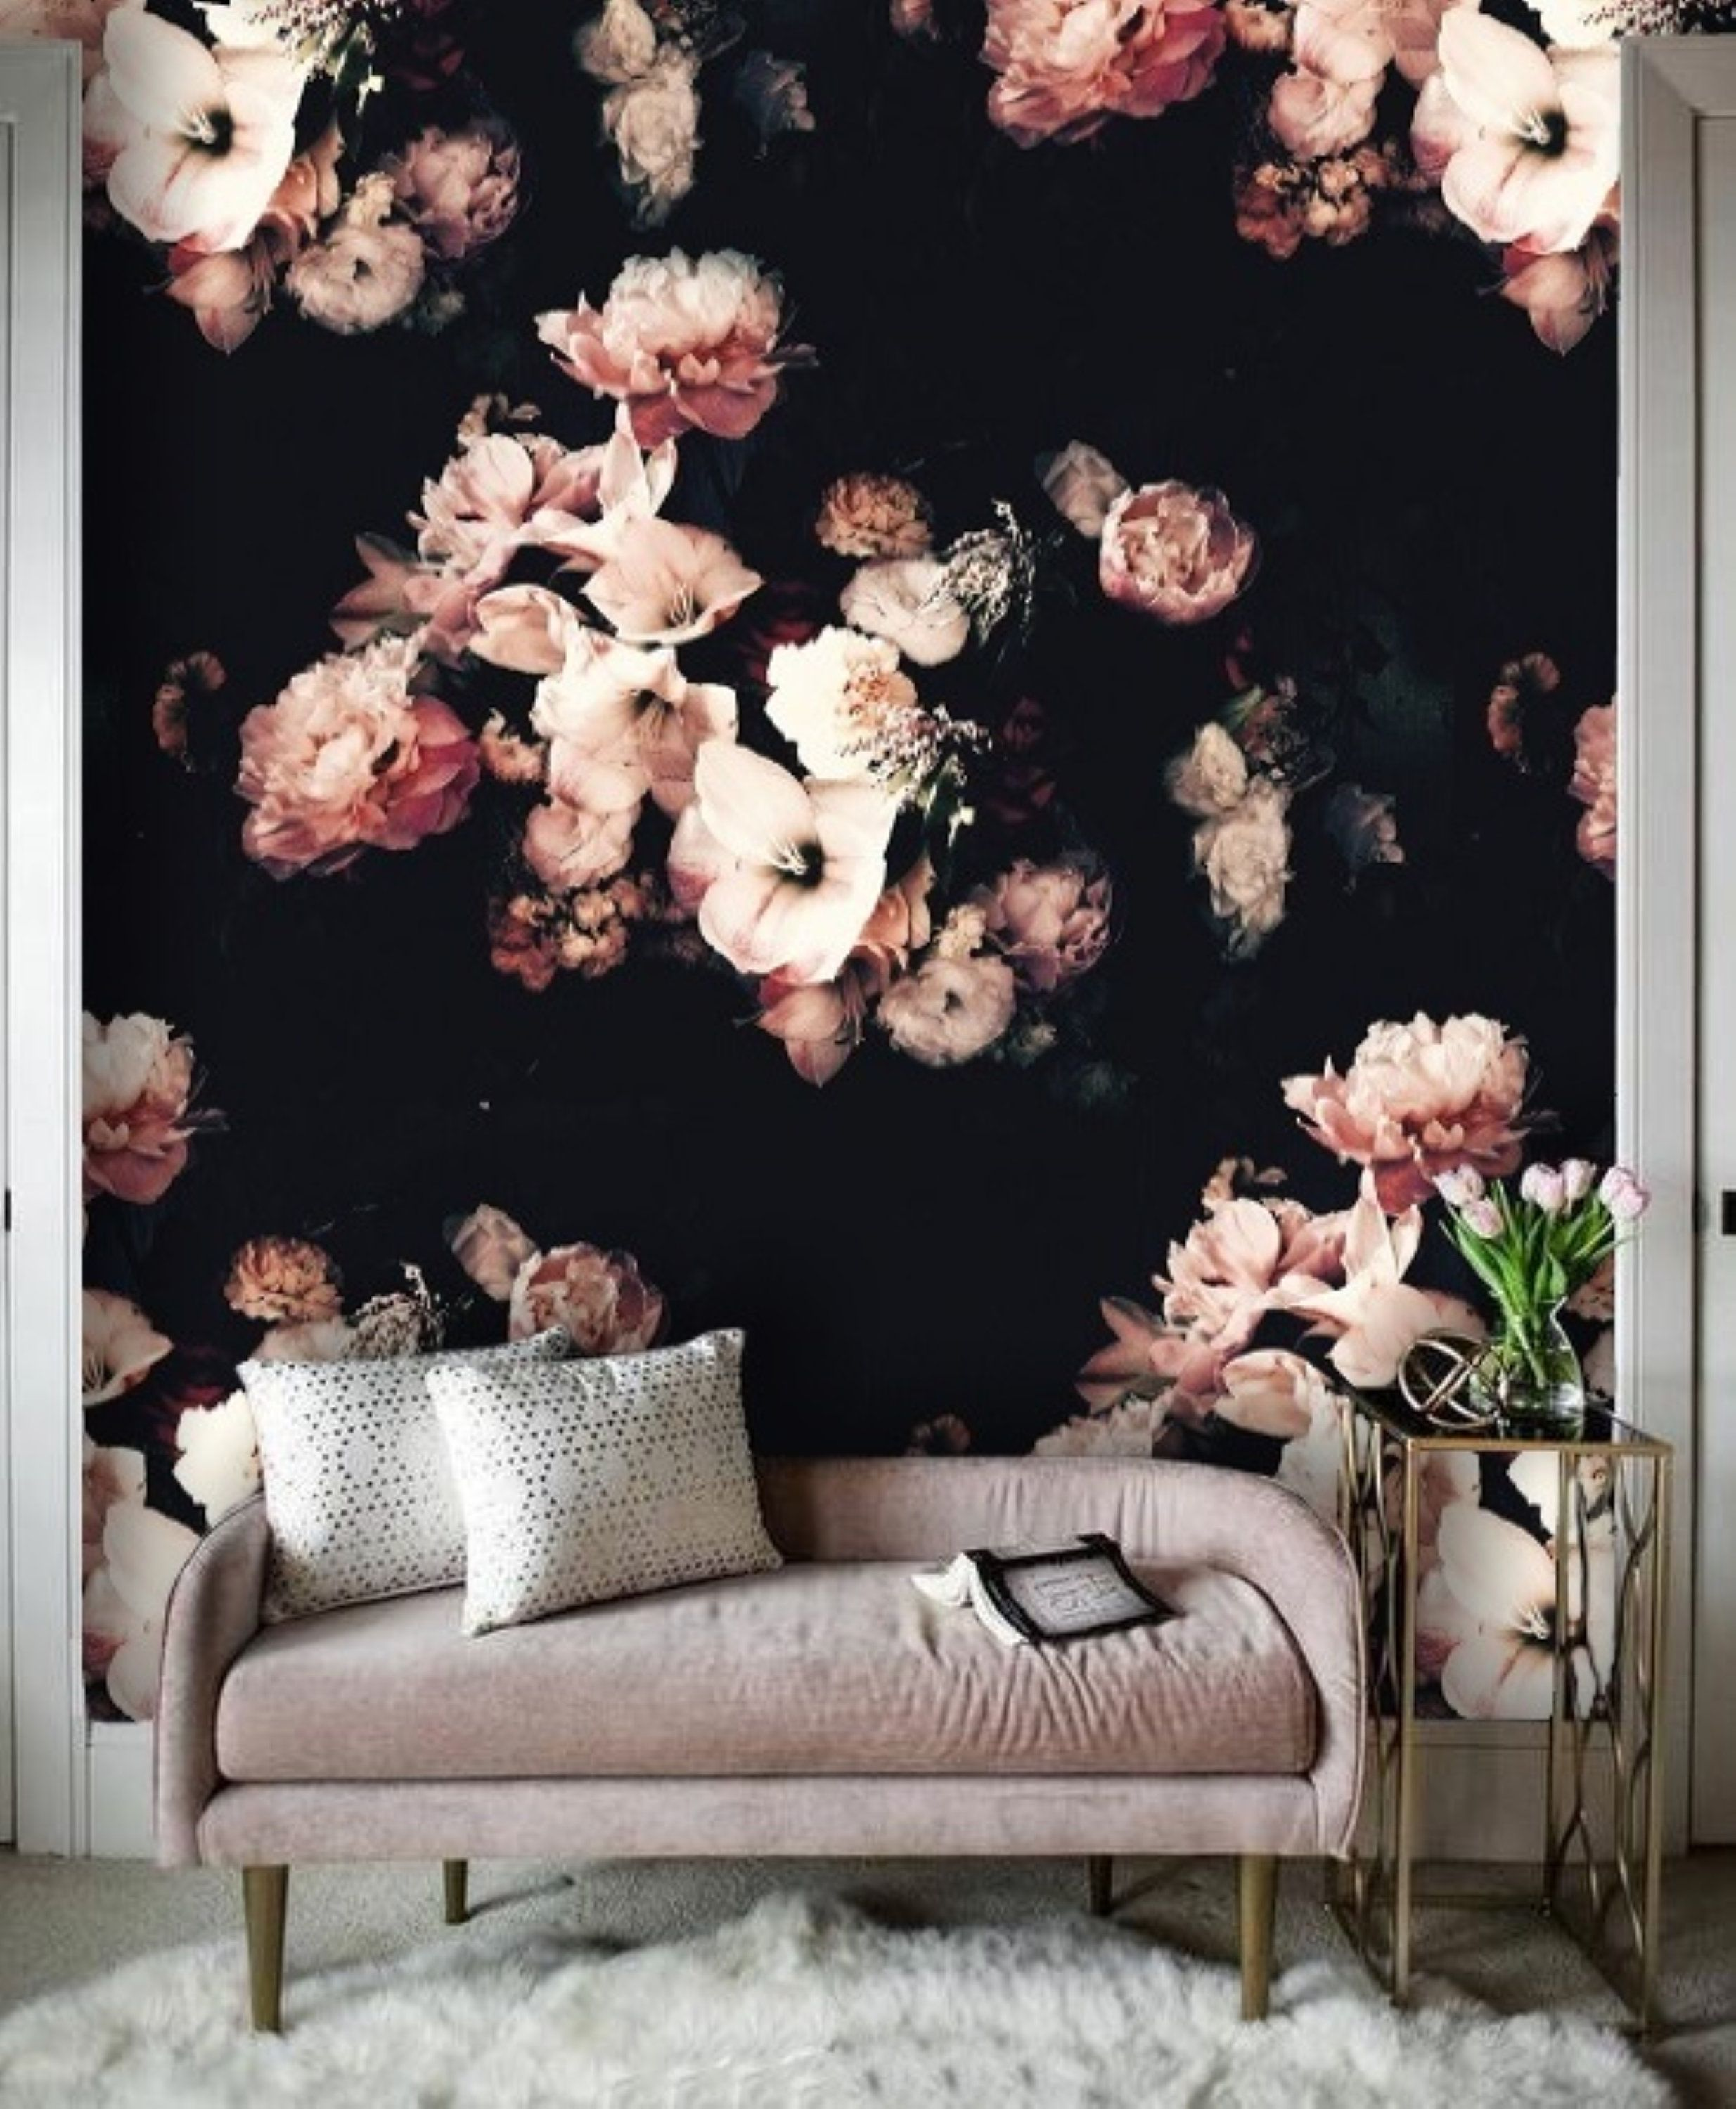 Dutch Dark Vintage Floral Removable Wallpaper Peel And Stick Etsy Black Floral Wallpaper Floral Wallpaper Large Floral Wallpaper